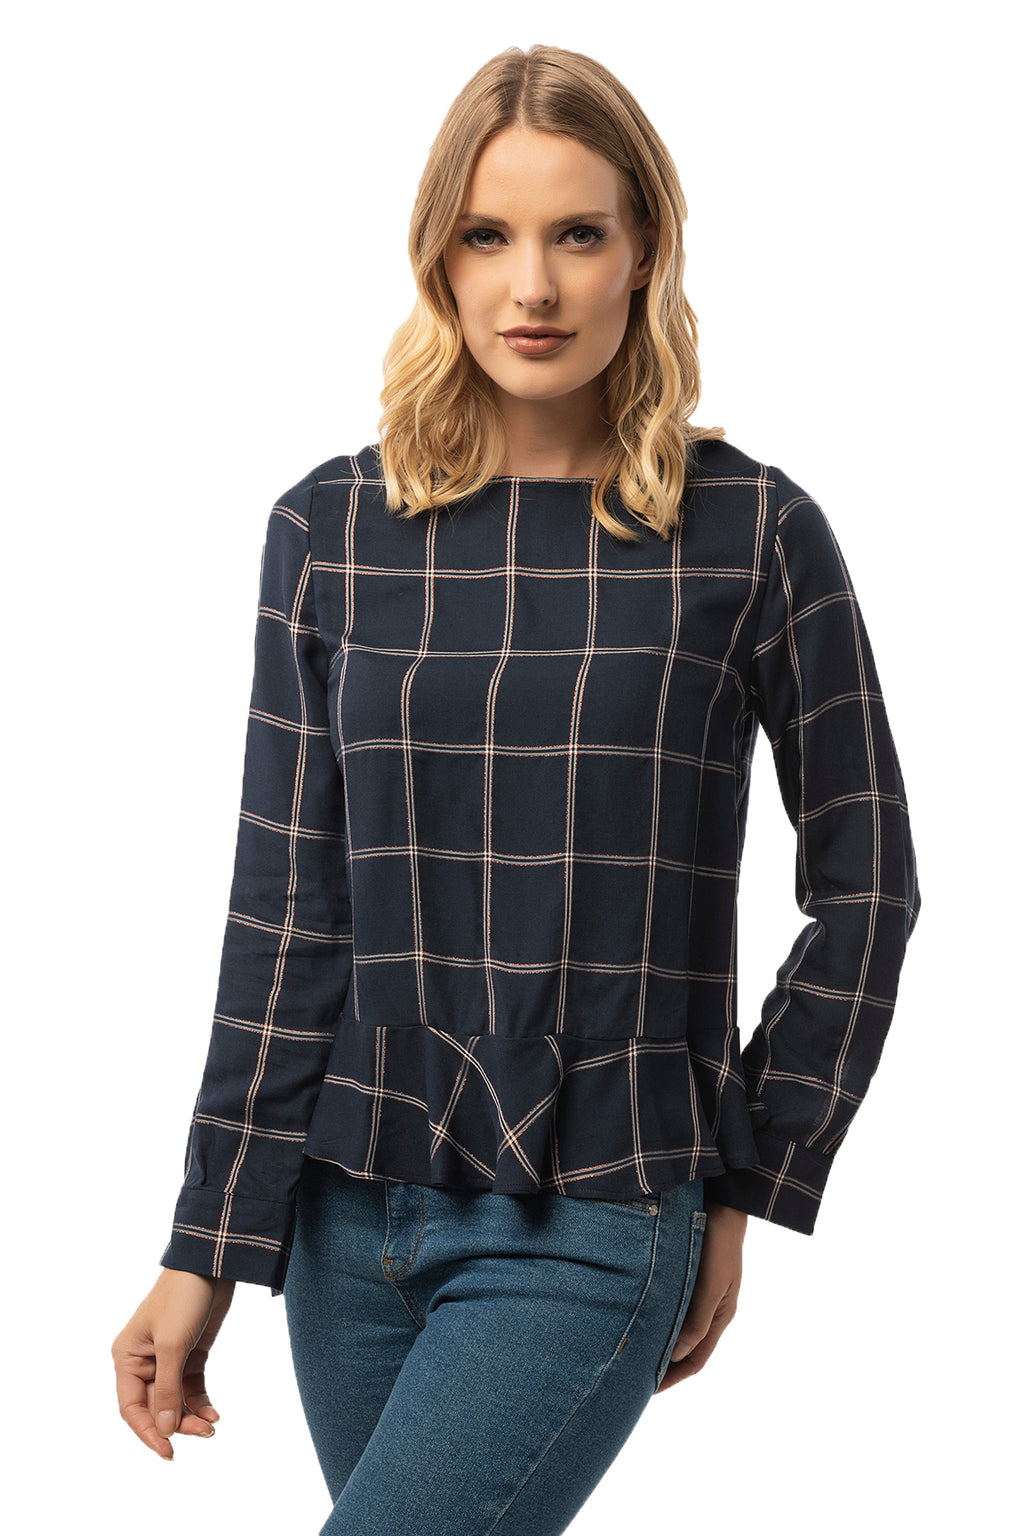 Ruffle Bottom Detailed Navy Plaid Blouse - Long Sleeve